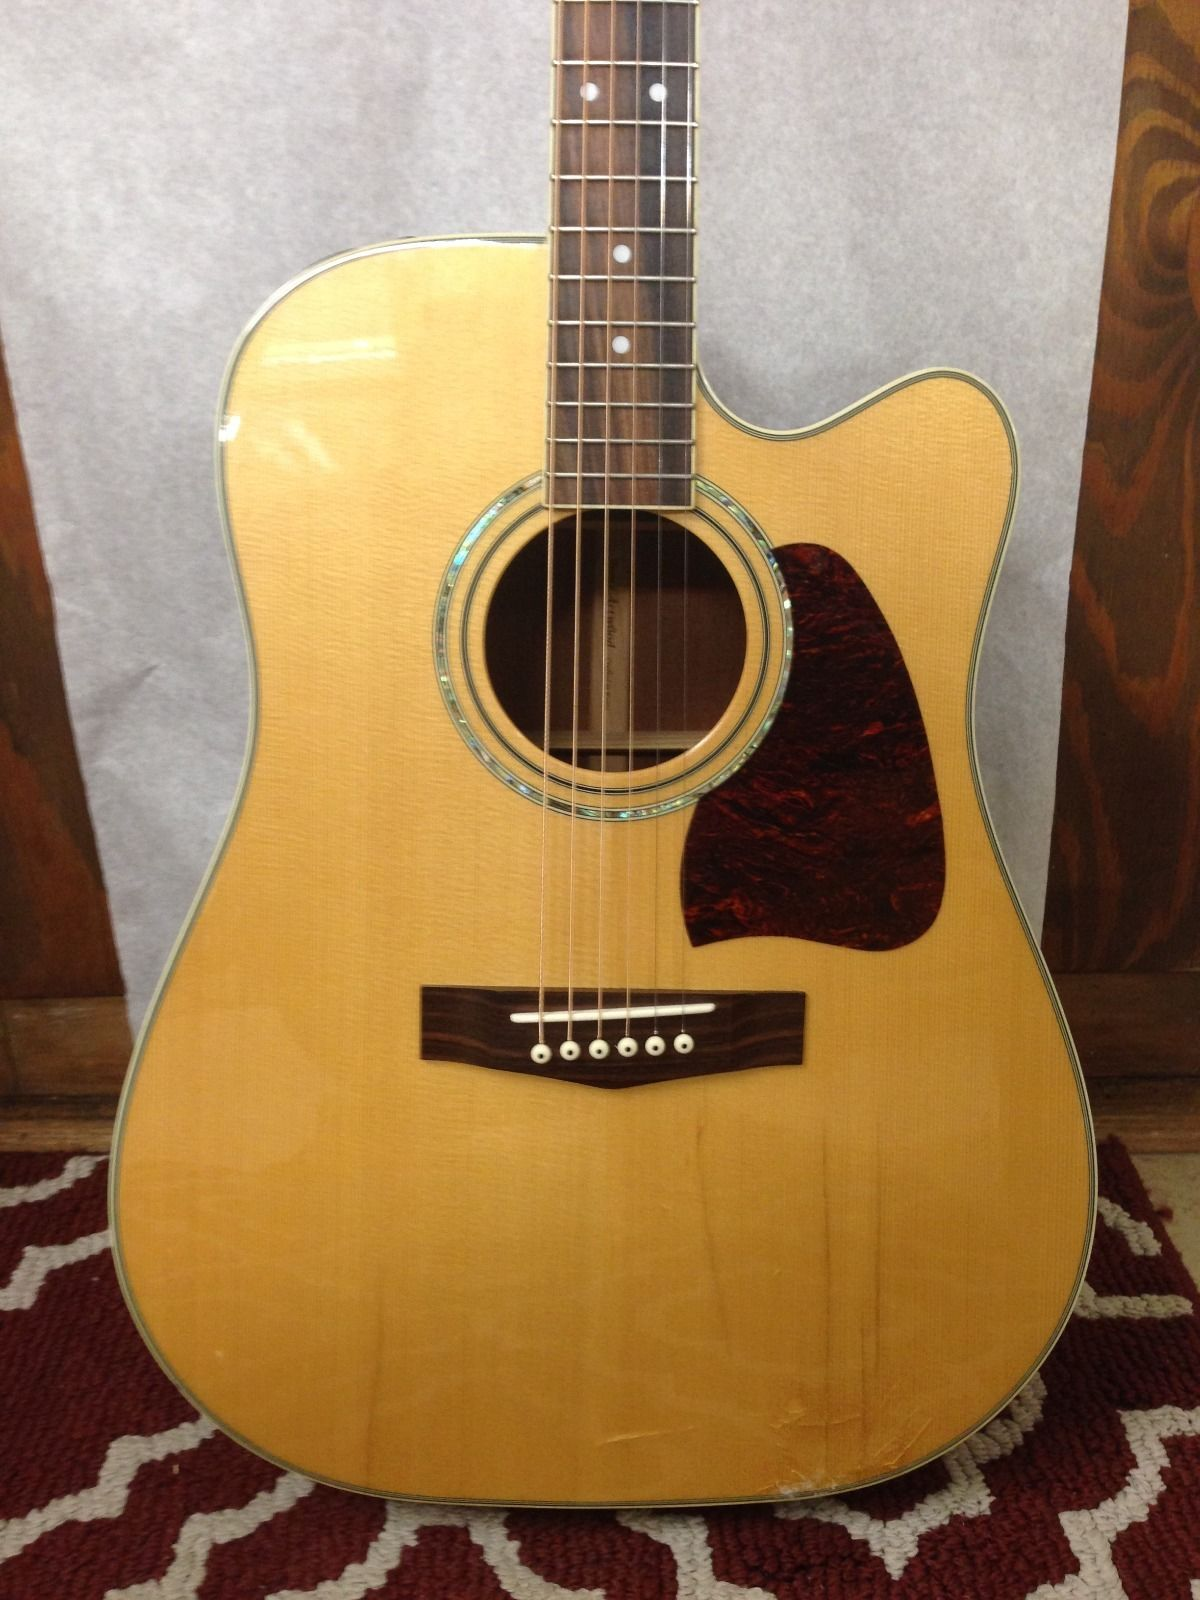 ibanez aw100ce acoustic electric guitar guitar of china. Black Bedroom Furniture Sets. Home Design Ideas